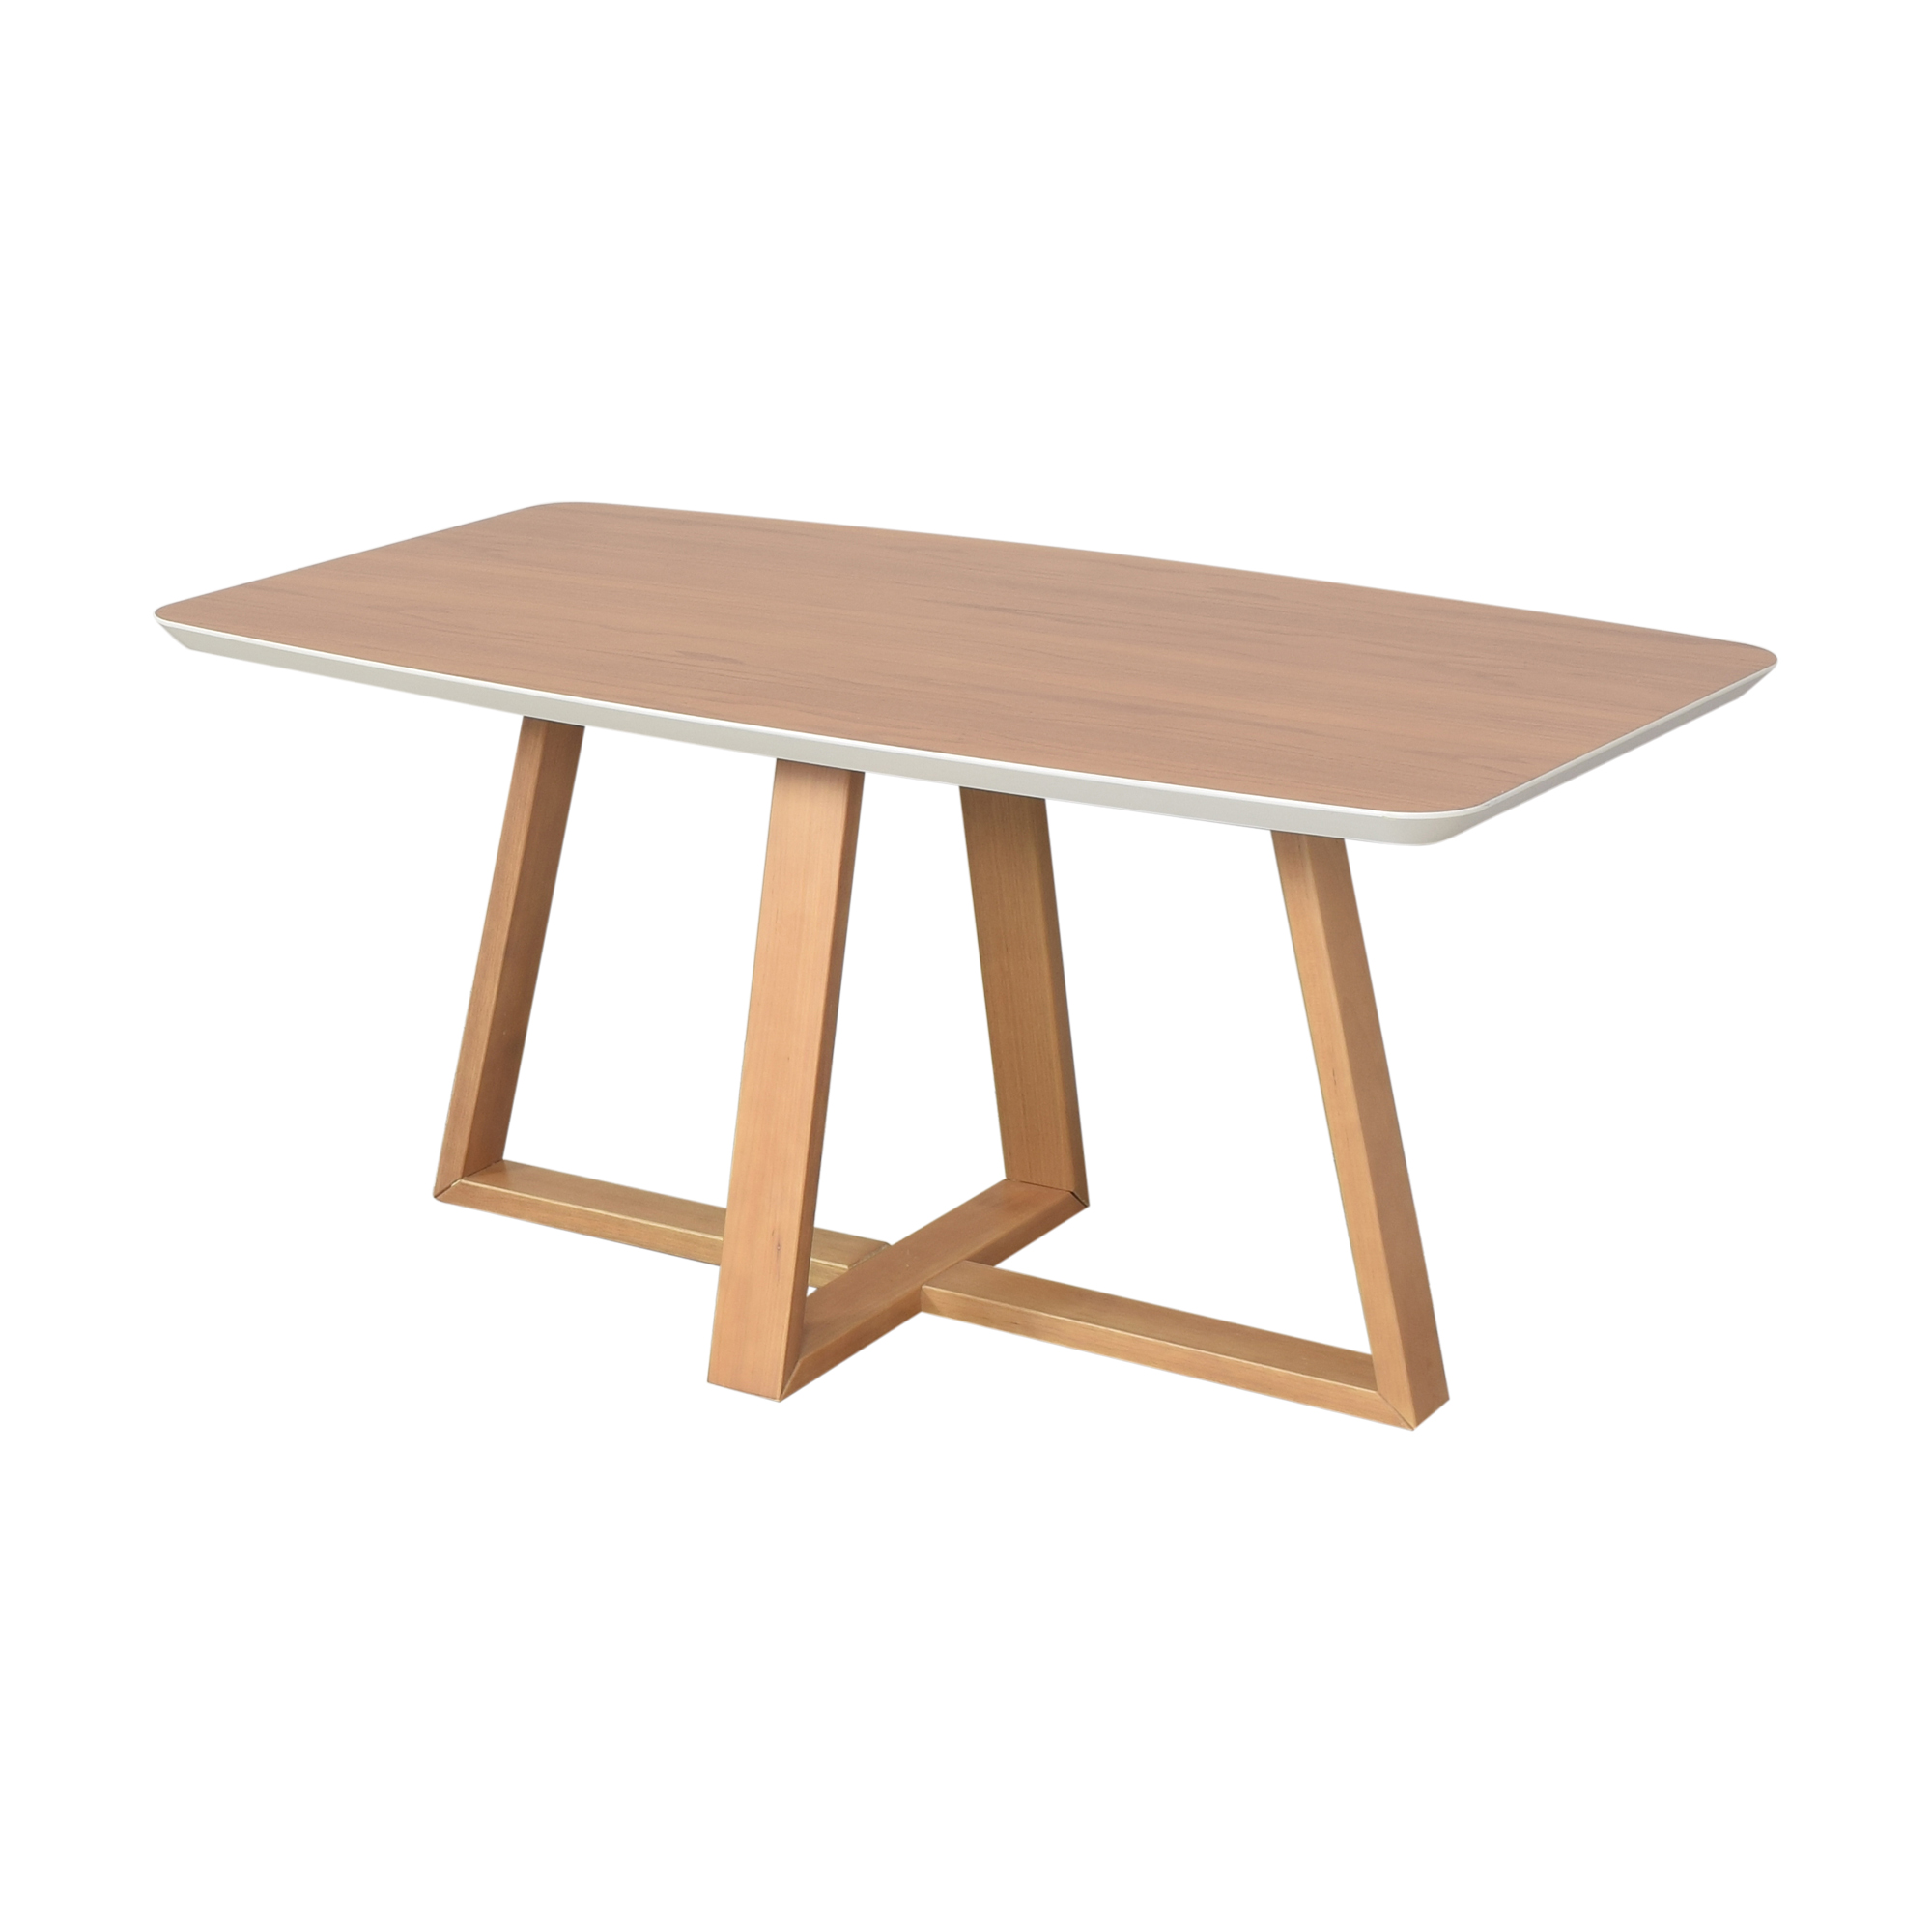 Wayfair Mapleview Trestle Dining Table / Dinner Tables